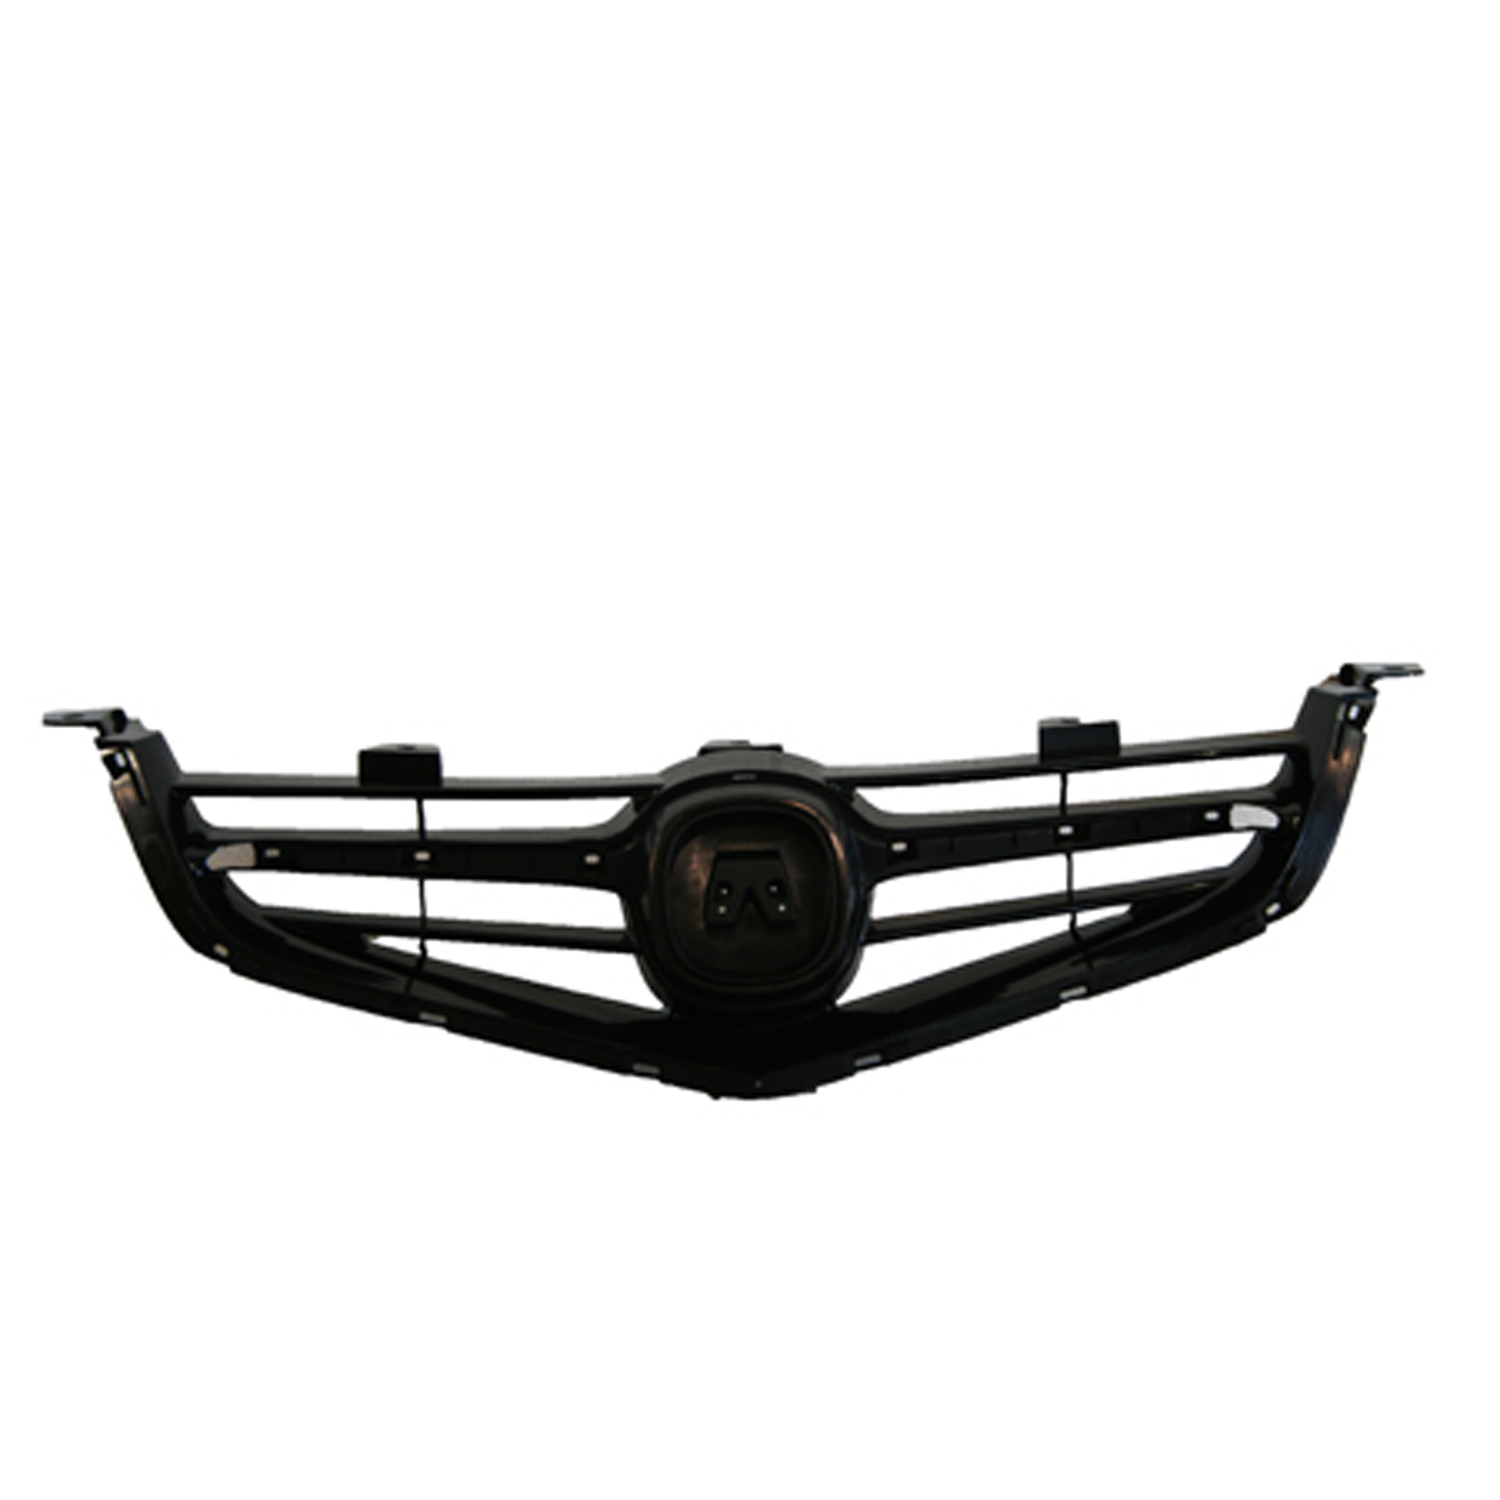 Keystone Collision, New Standard Replacement Front Grille